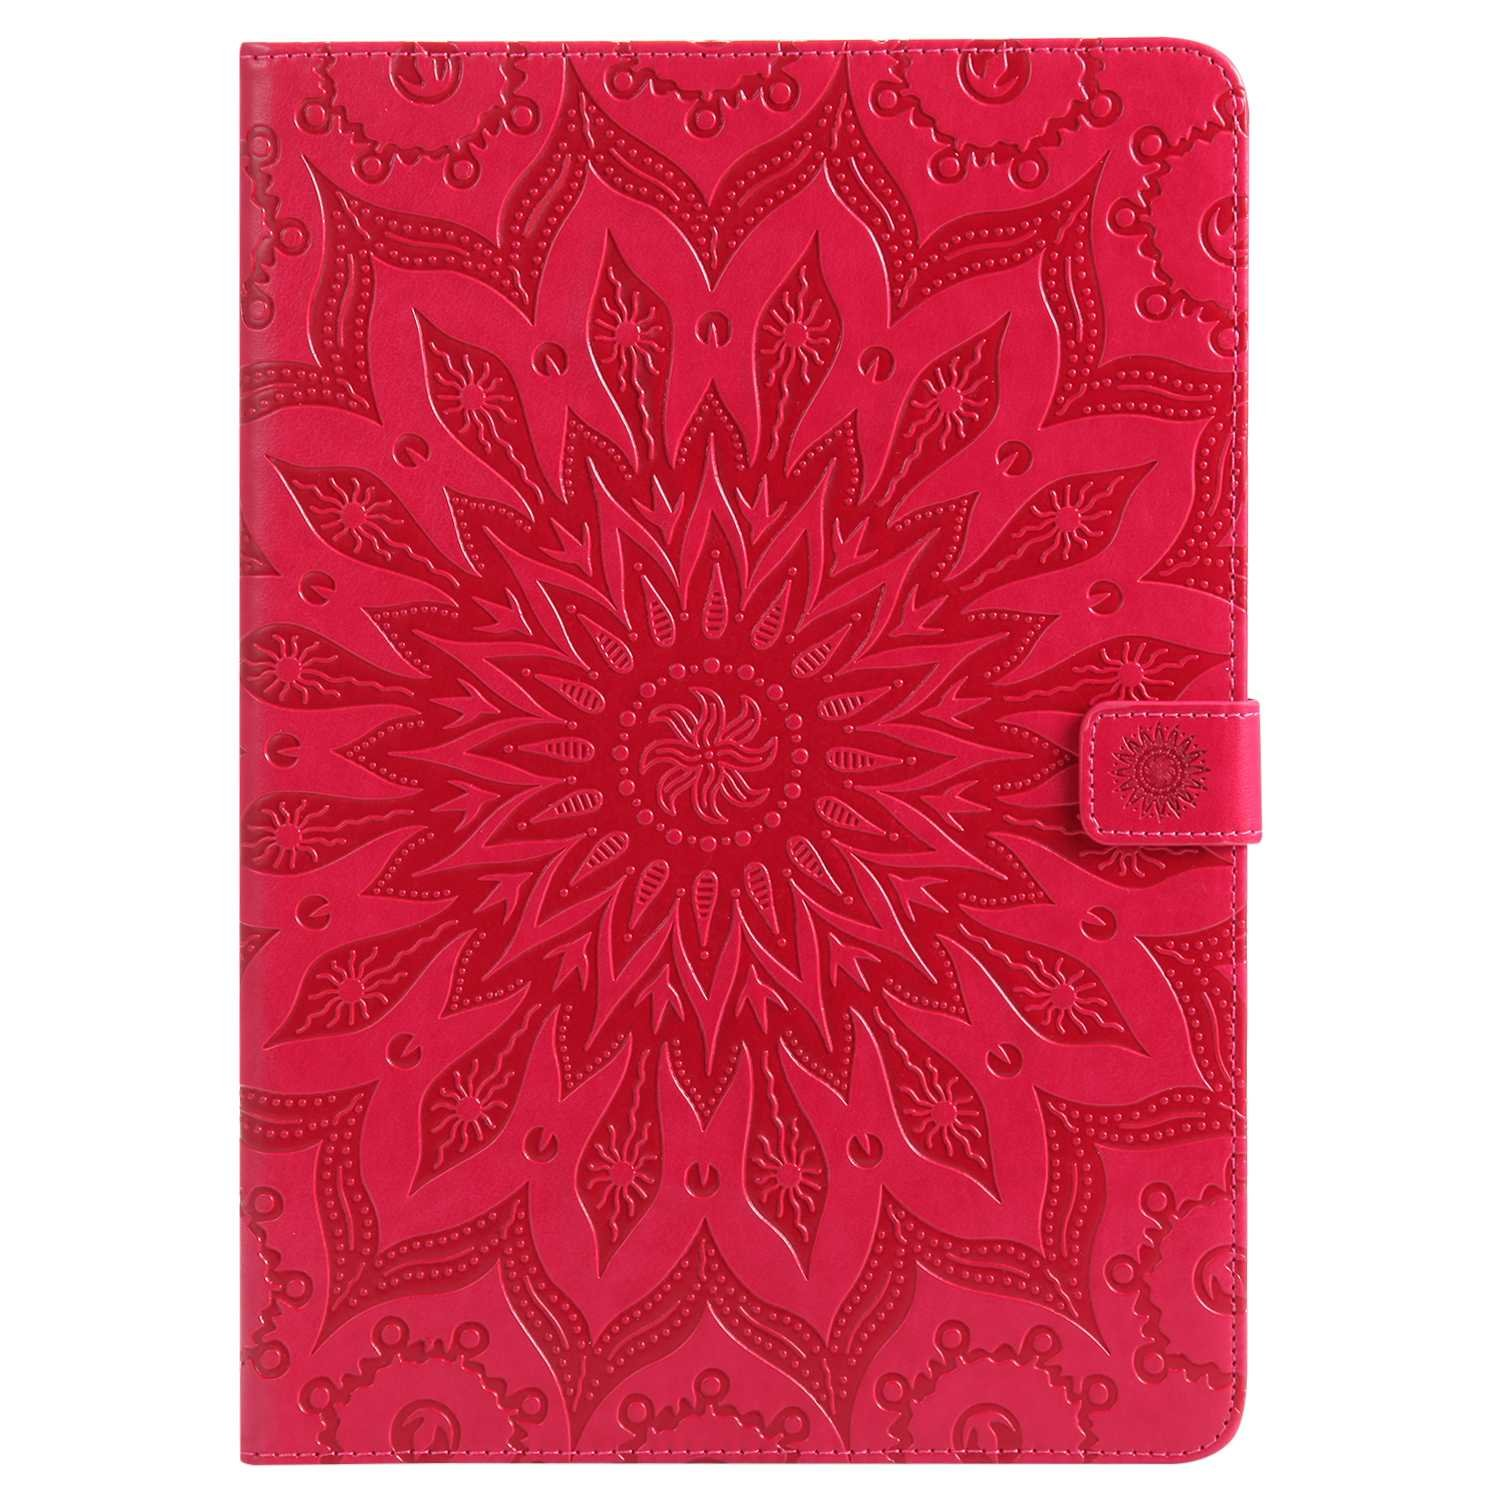 Bear Village iPad Pro 10.5 Inch Case, Anti Scratch Shell with Adjust Stand, Full Body Protective Cover for Apple iPad Pro 10.5 Inch, Red by Bear Village